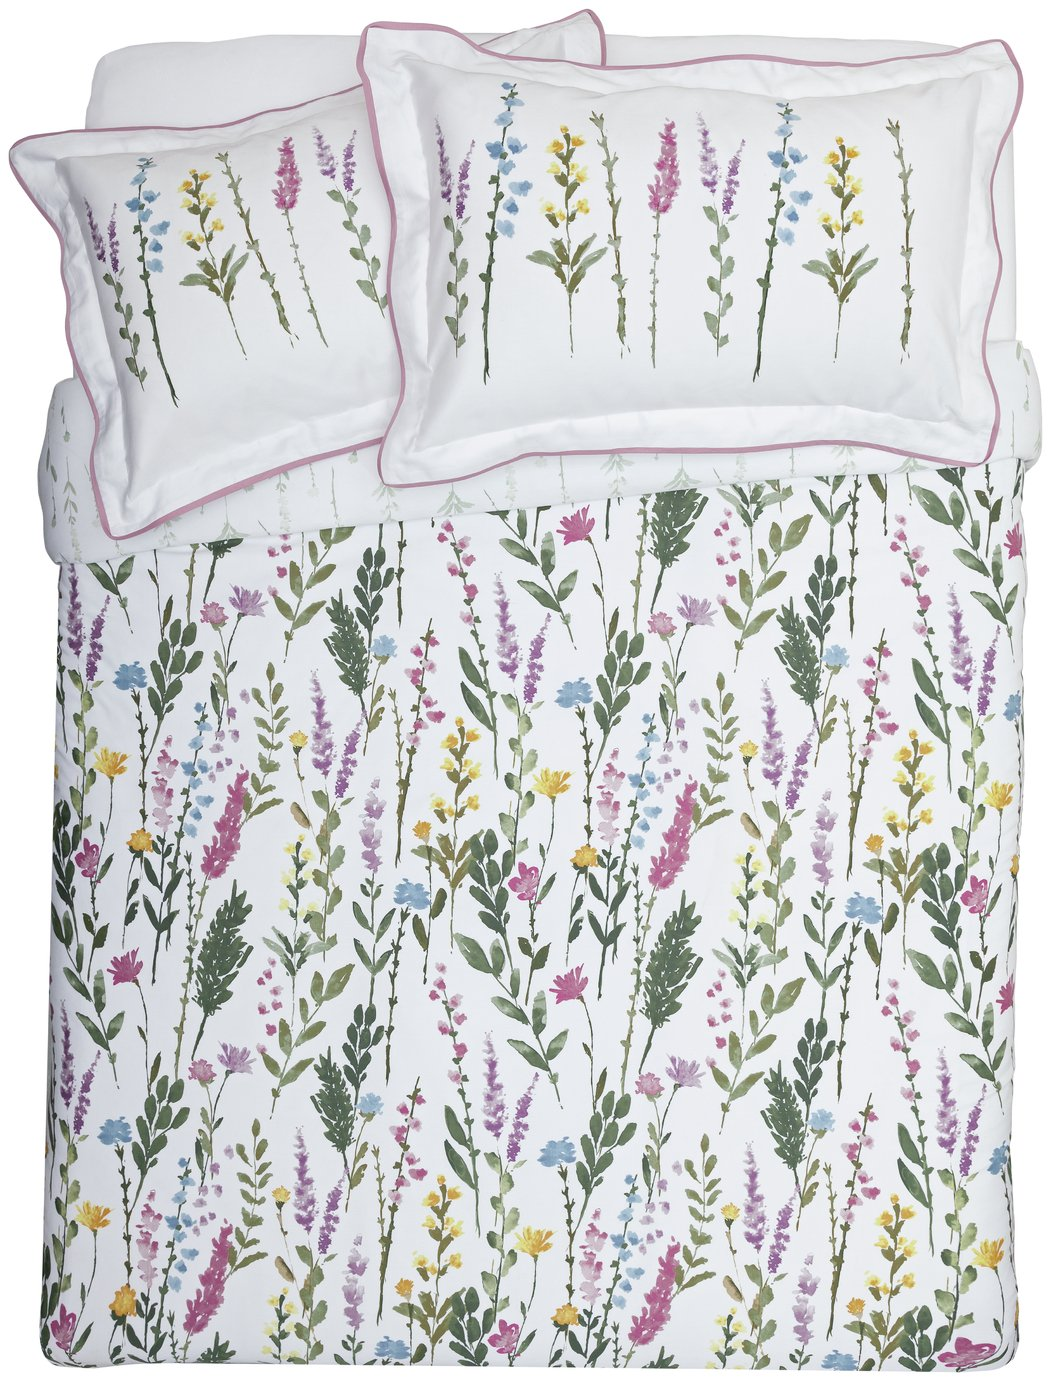 Argos Home Botanical Floral Bedding Set - Kingsize